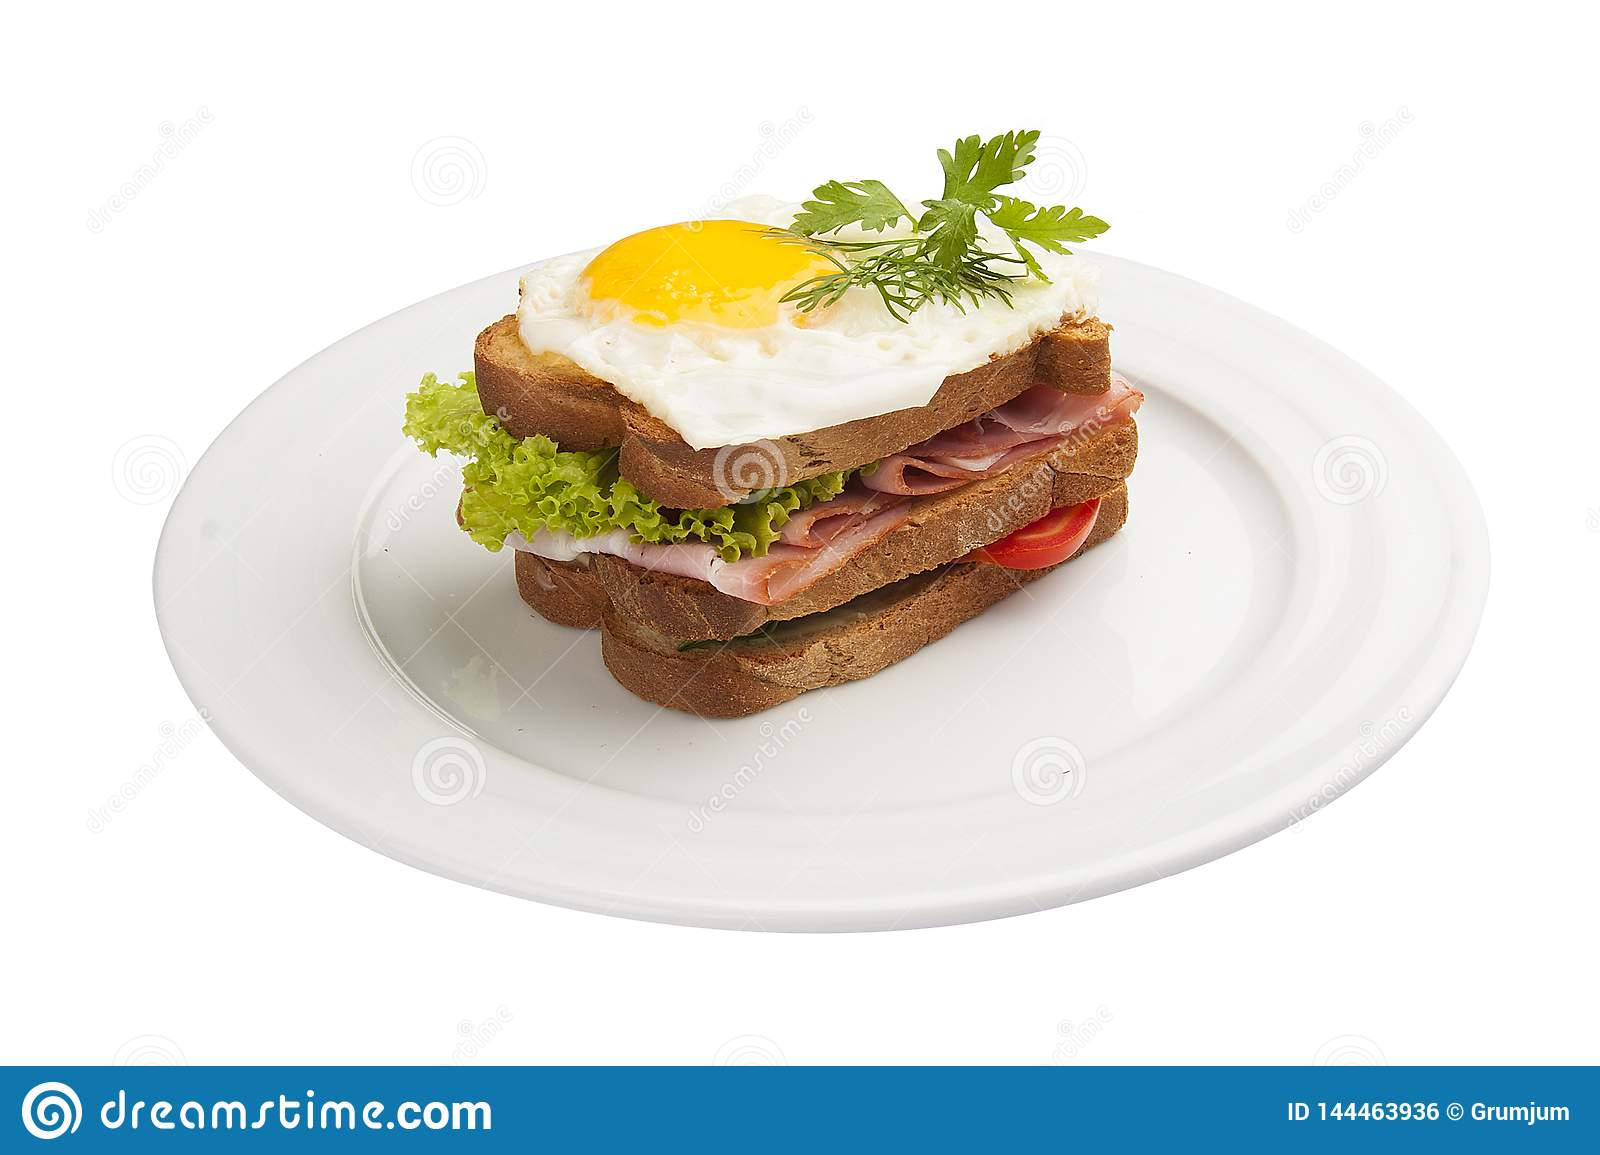 Breakfast. Sandwich with egg, ham and tomato.